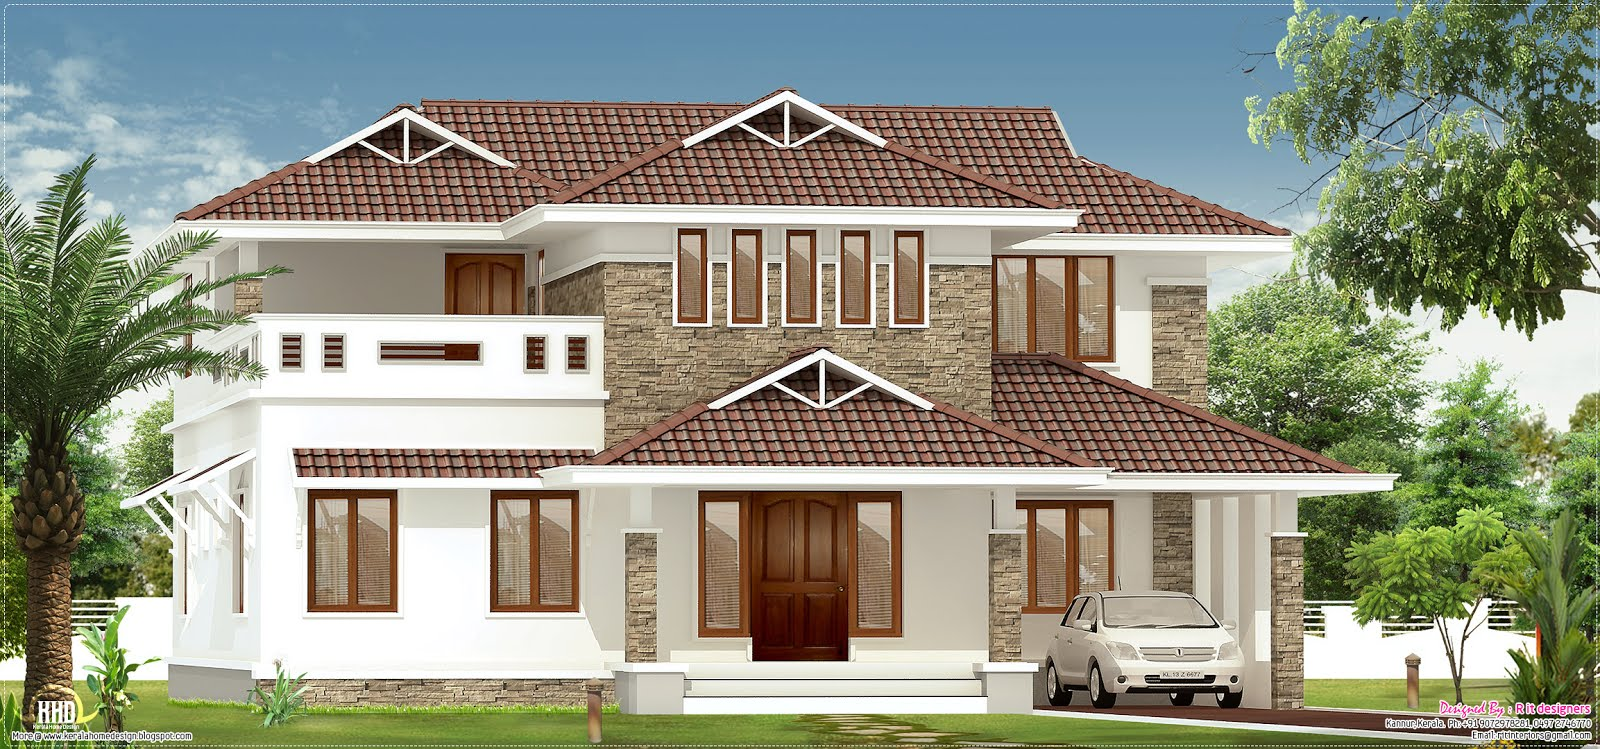 N Home Elevation Journal : Home villas front elevation n design images omahdesigns